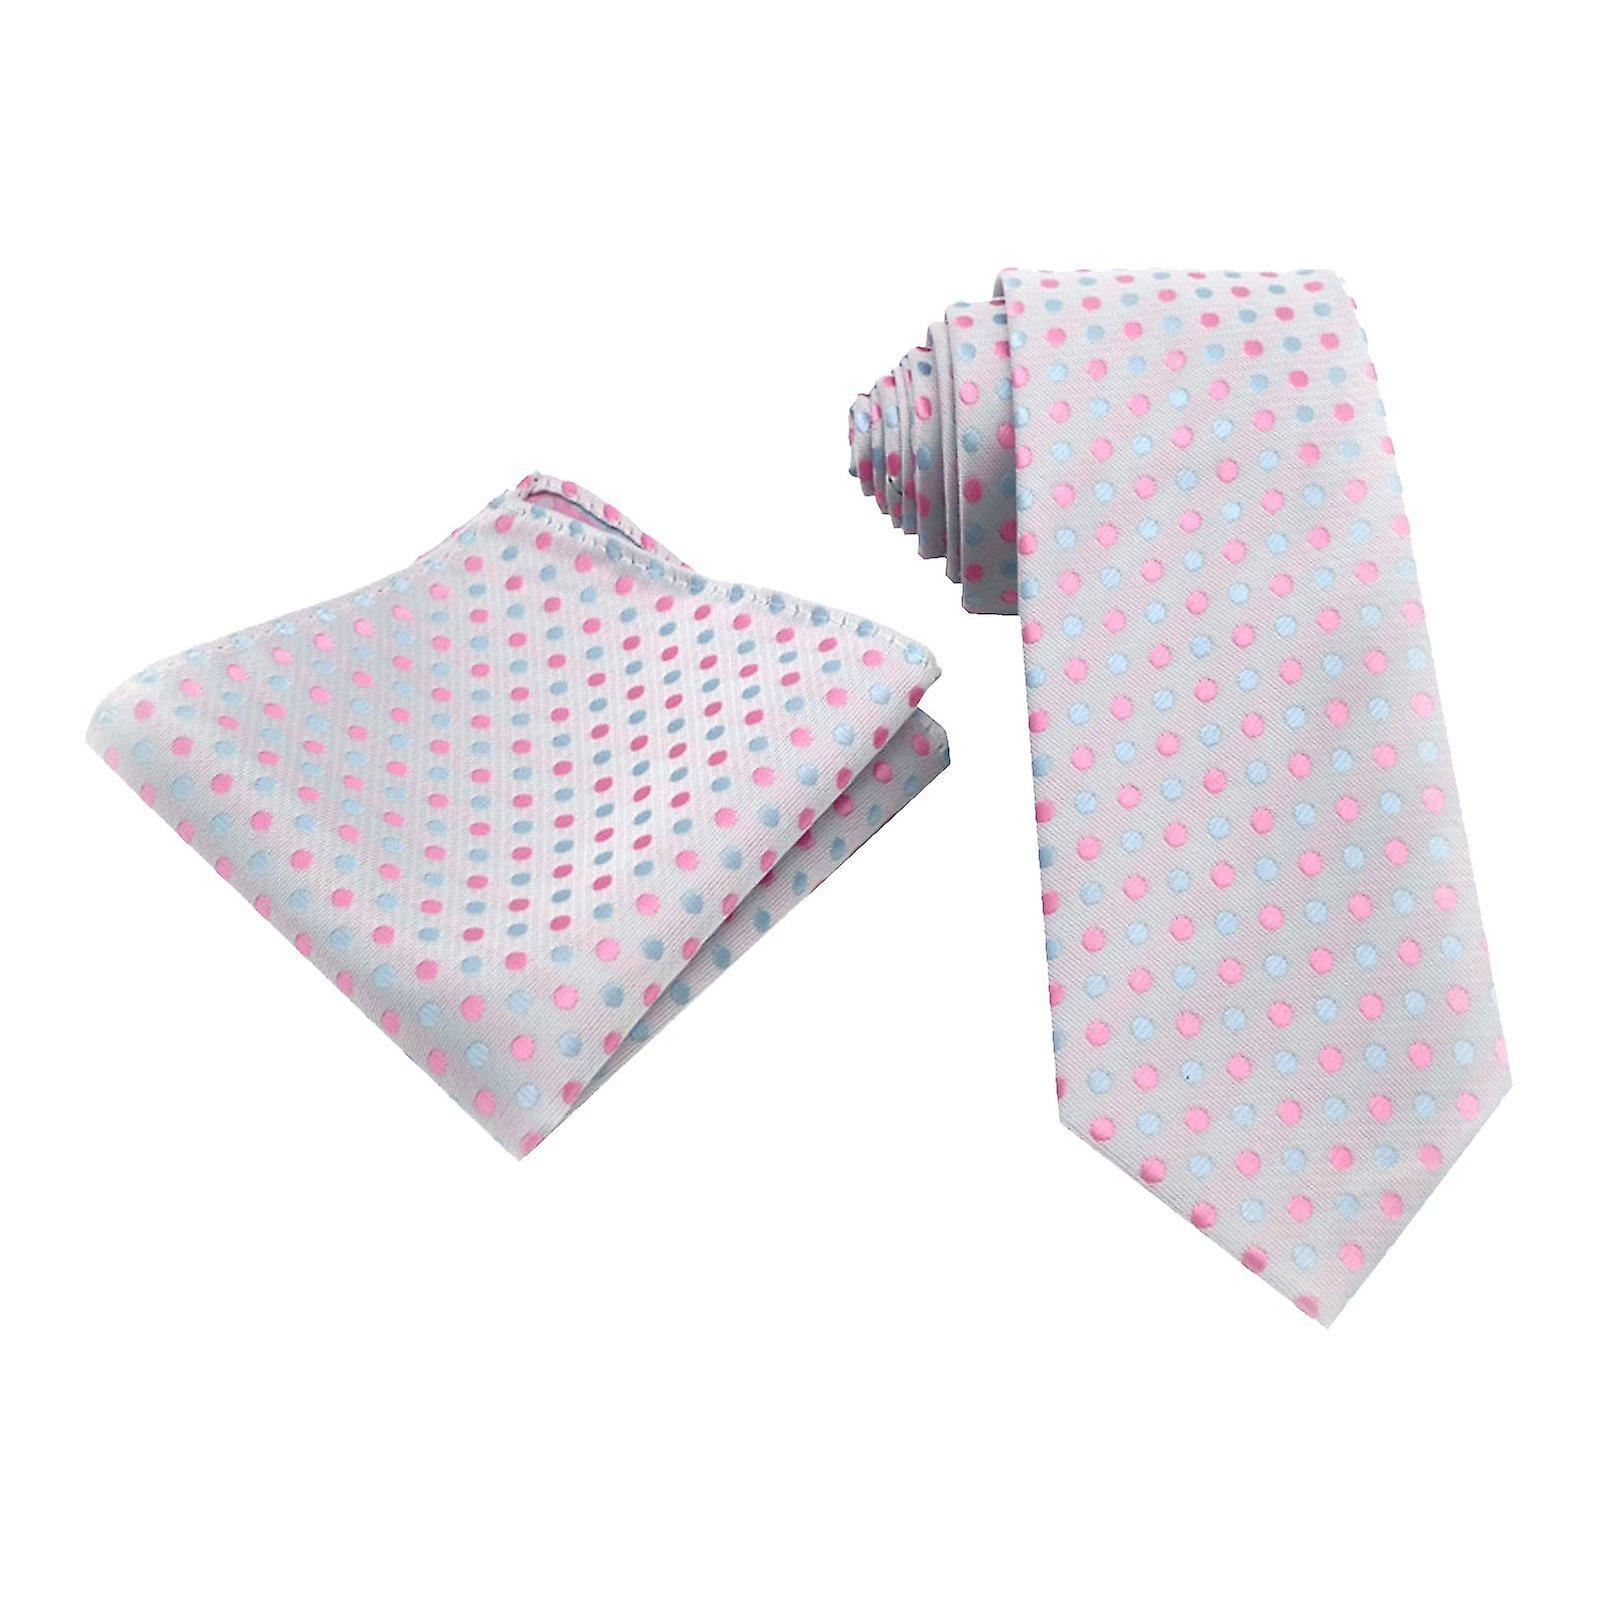 Silver pink grey polka dot spot tie & pocket square set